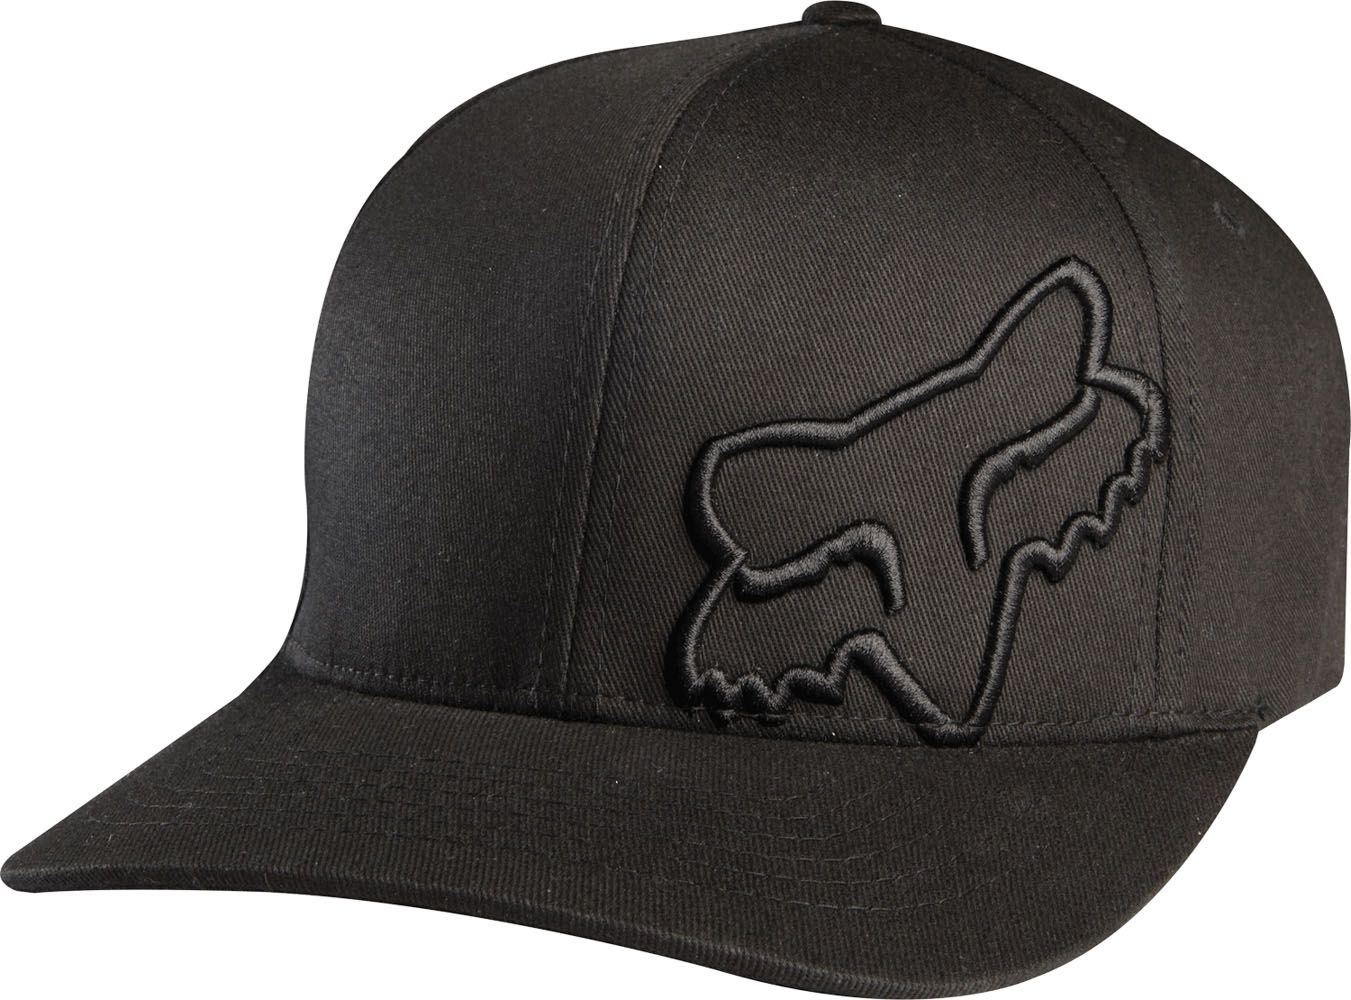 detail Pánská čepice Fox Racing Flex 45 Flexfit Hat Black